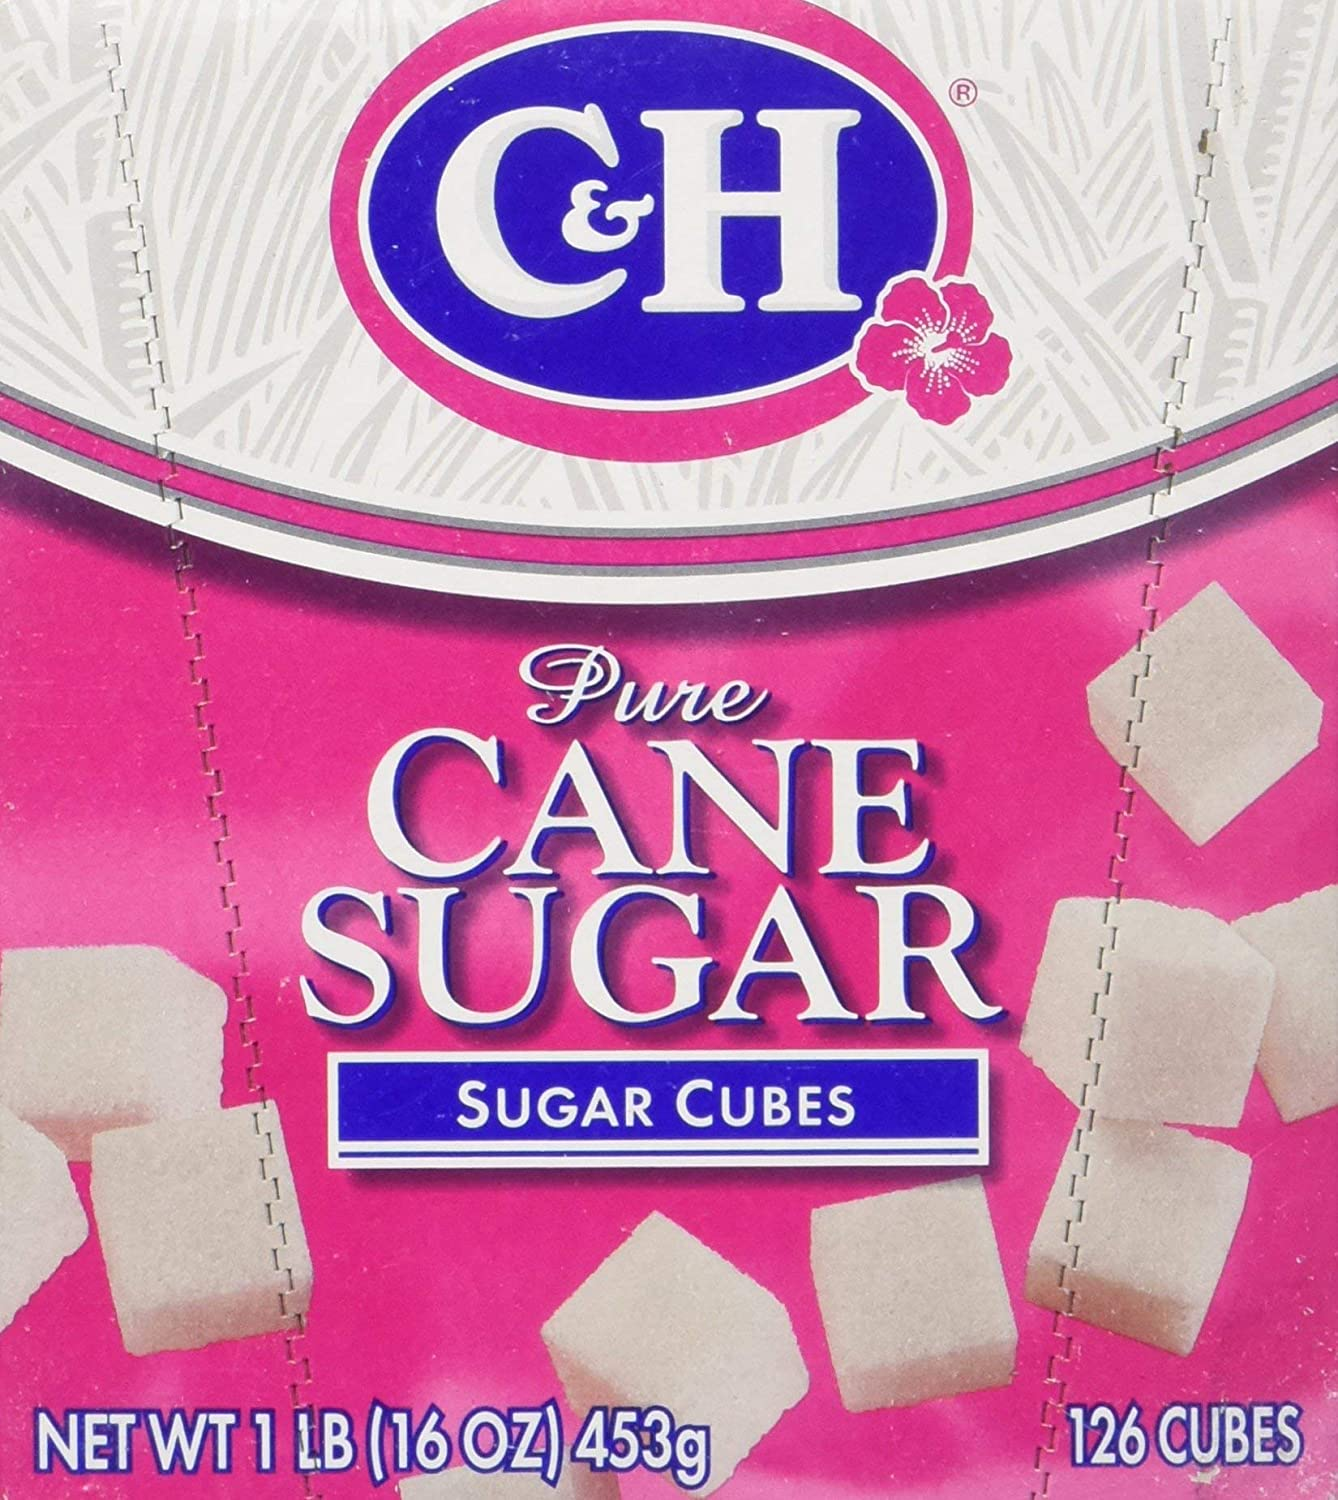 CH Pure Cane White Sugar ! Super beauty product restock quality top! Cube 1 2 lb OF - PACK Ranking TOP4